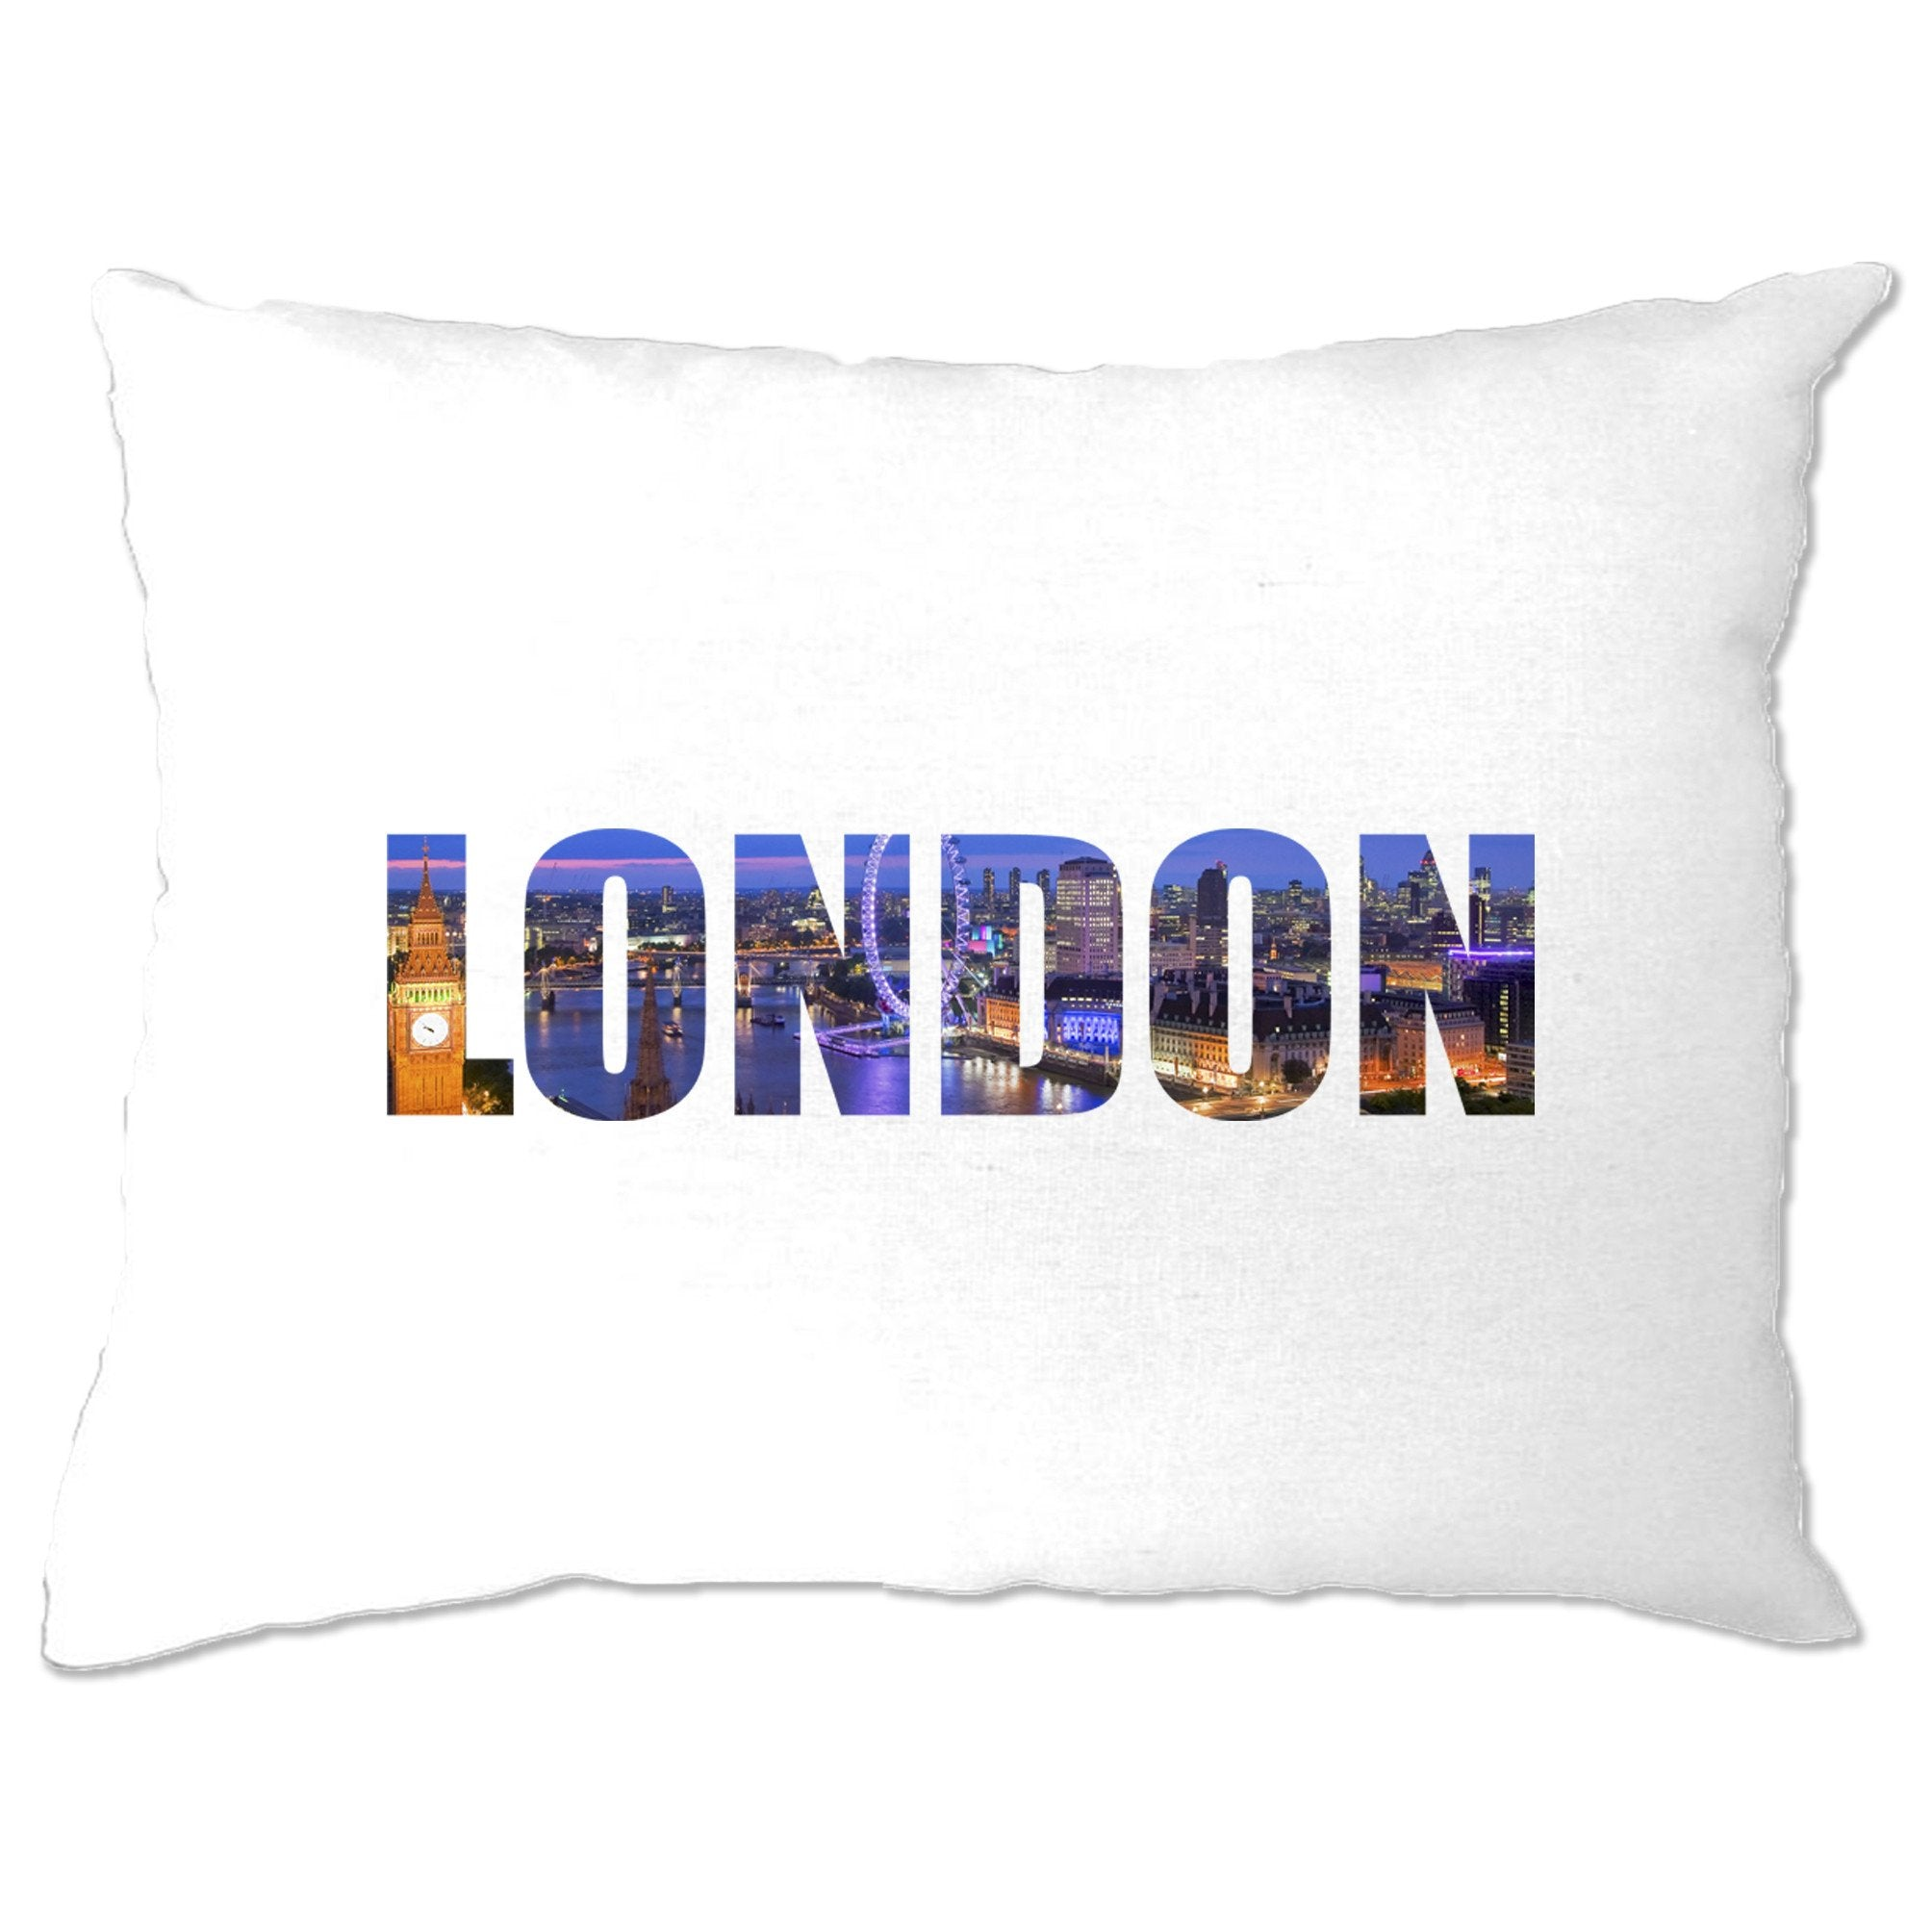 Tourist Pillow Case City Of London At Night Text Cutout